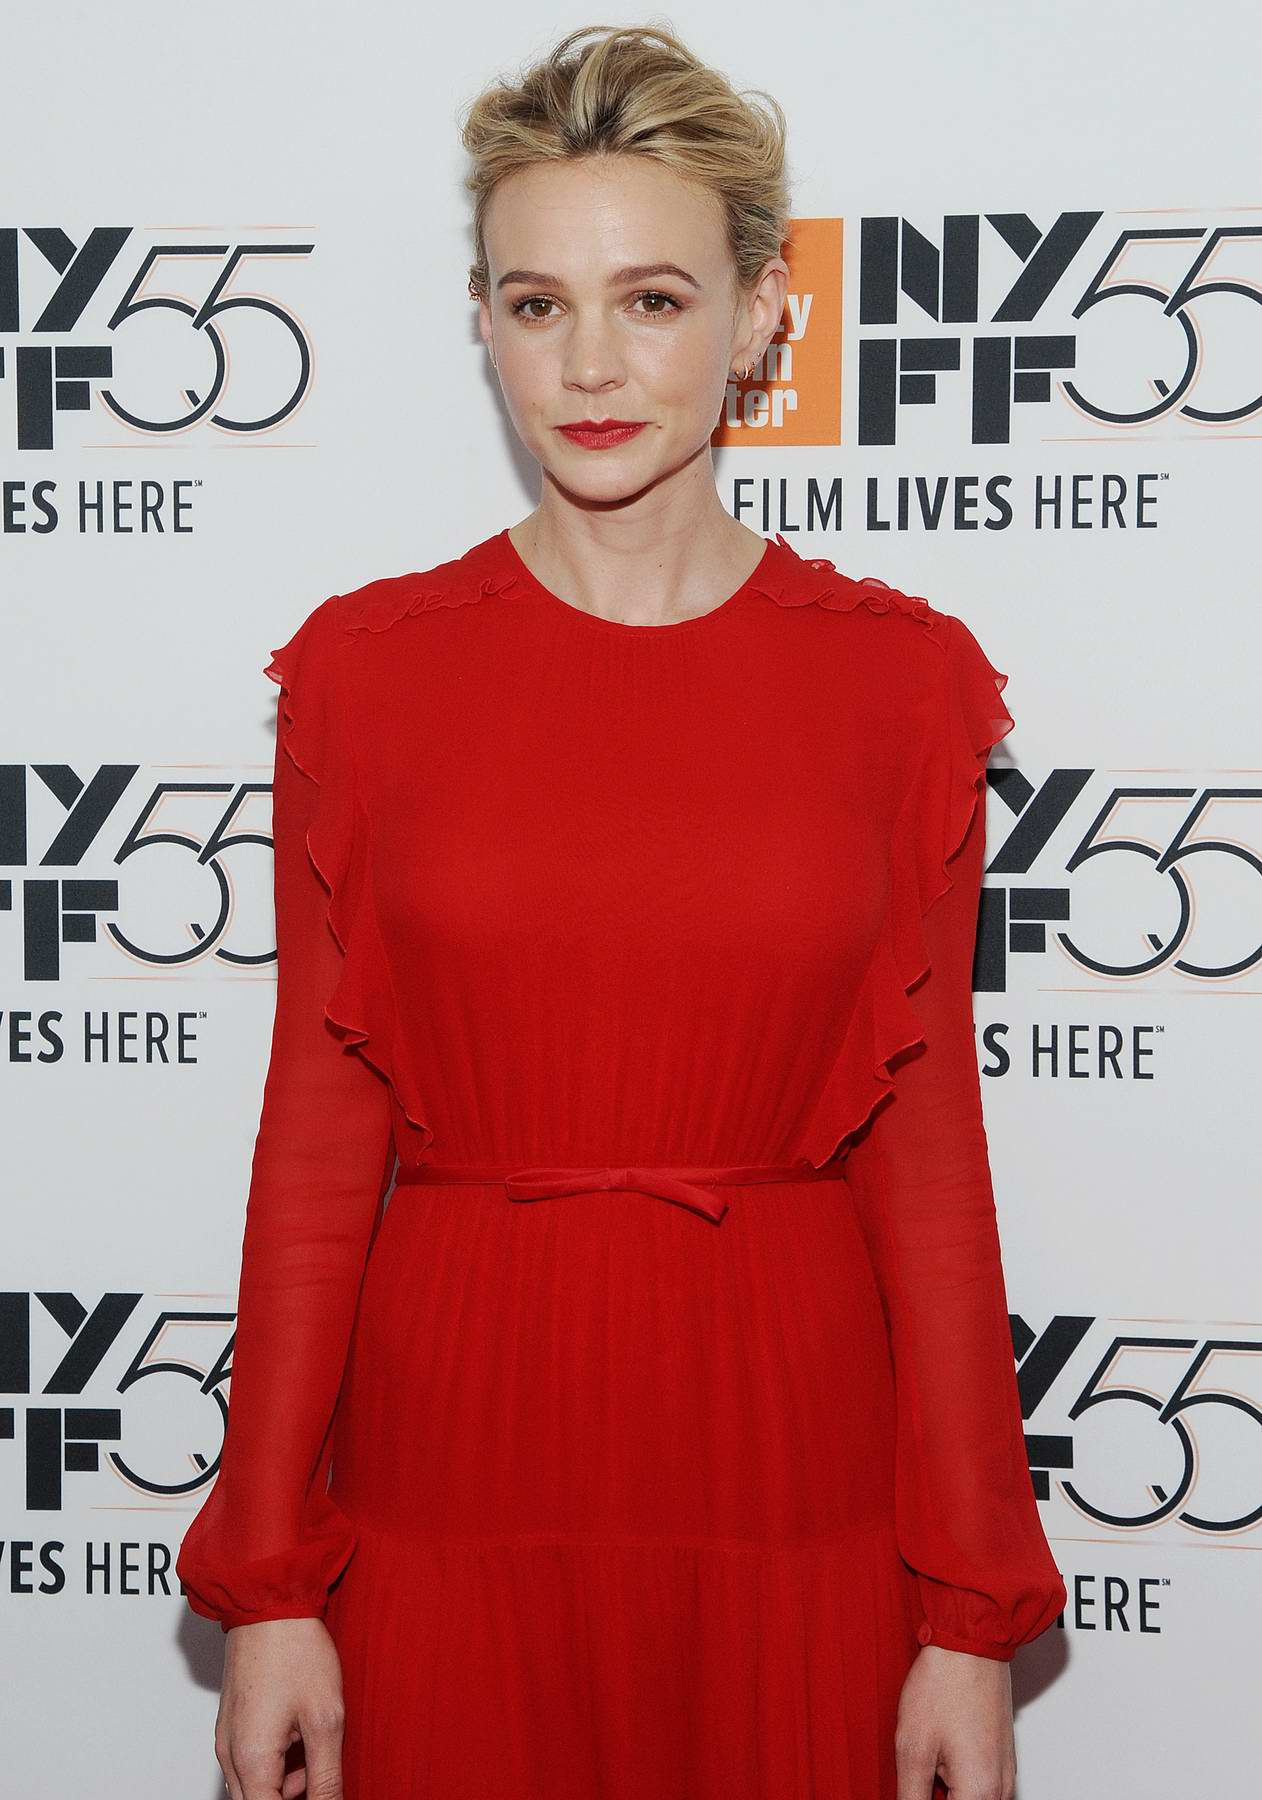 Carey Mulligan at the screening of 'Mudbound' during 55th New York Film Festival in New York City